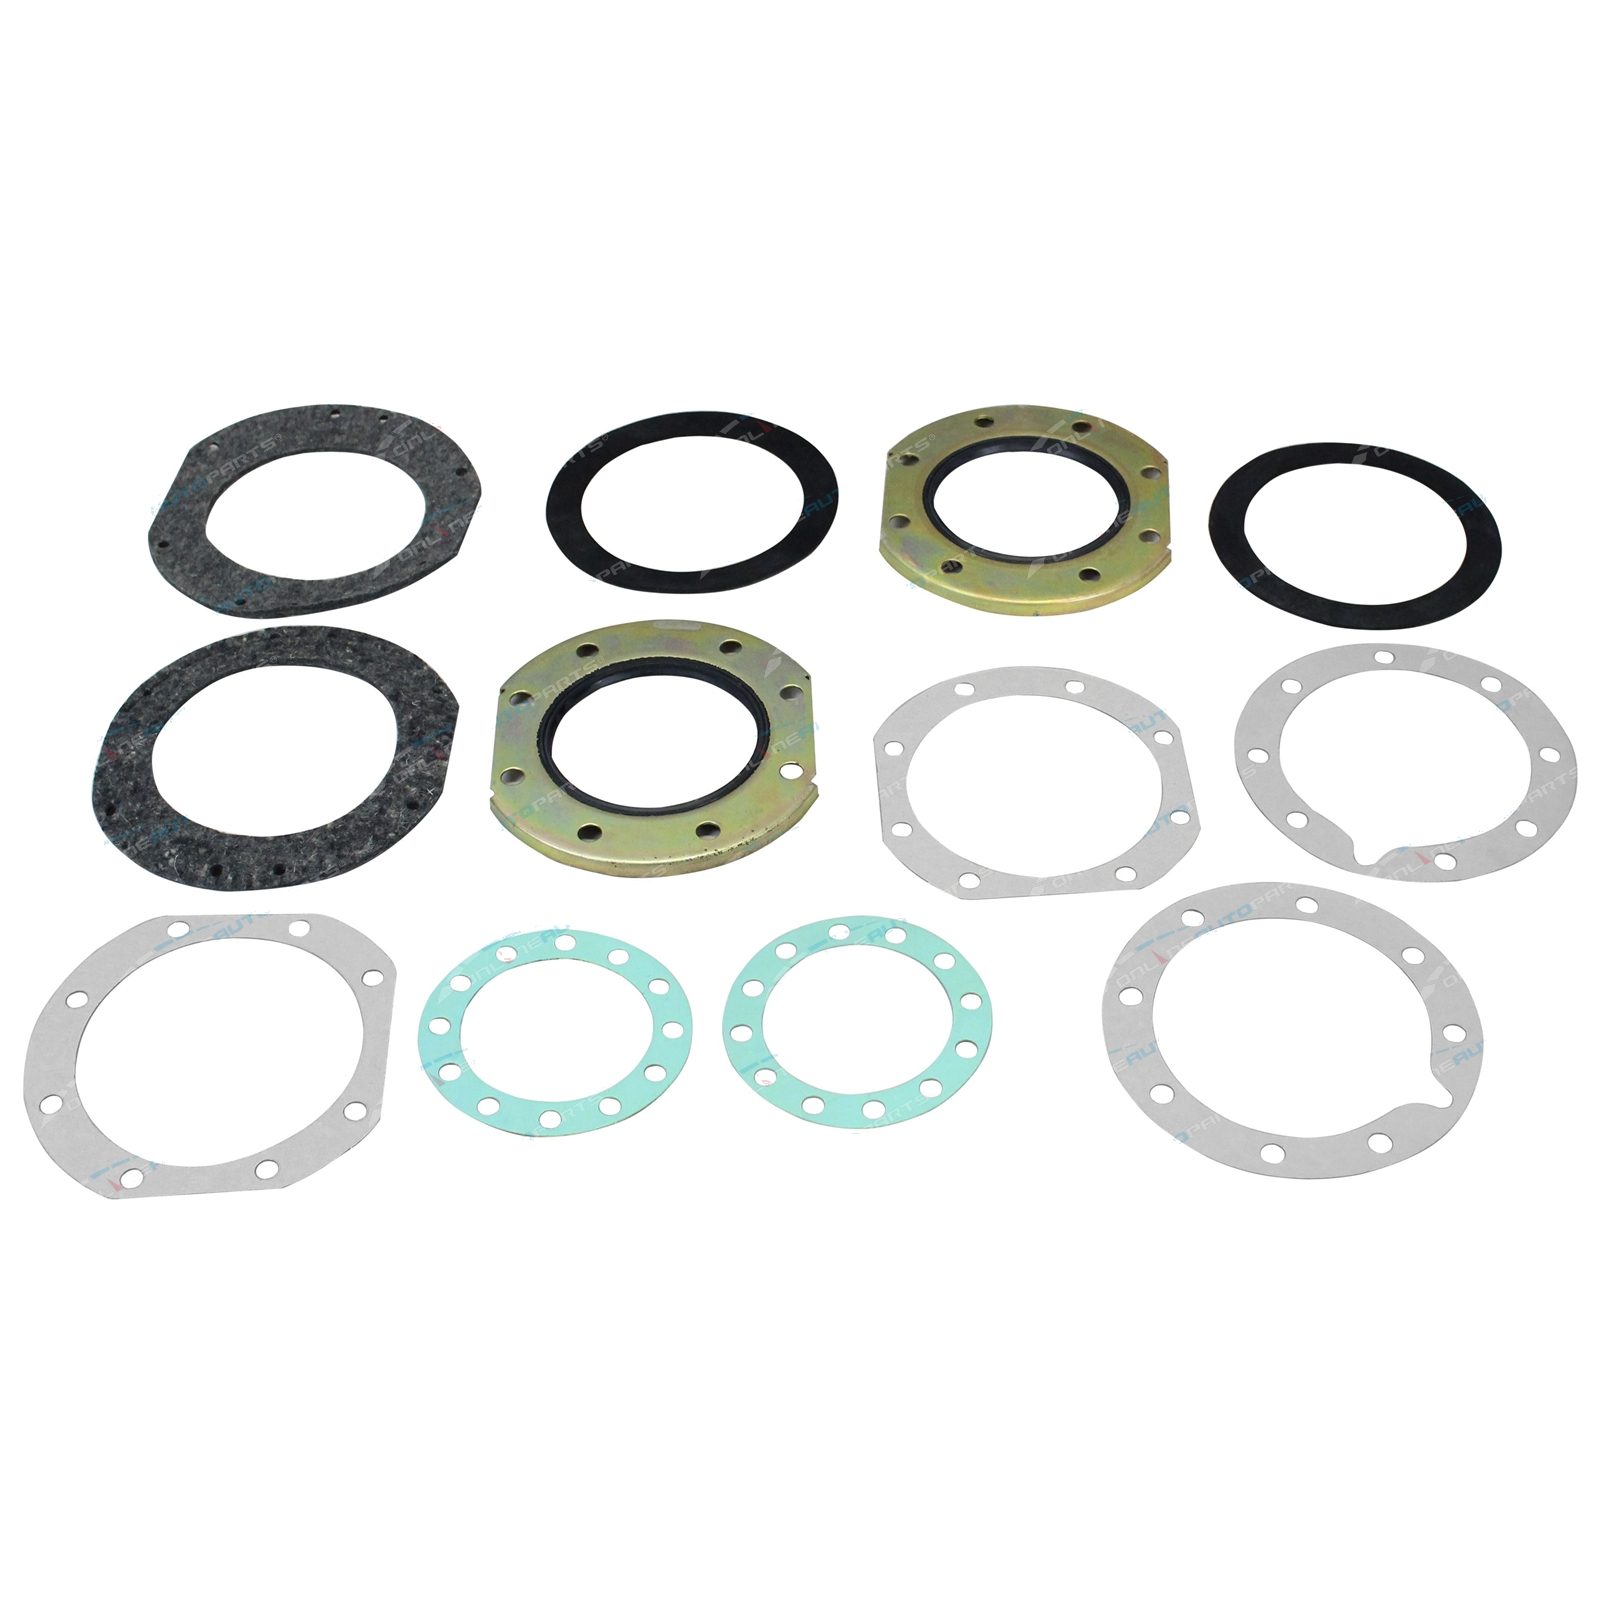 ZPN-00022 4X4 Swivel Hub Seal Aftermarket OEM Replacement suits Toyota Landcruiser HJ45 40 Series